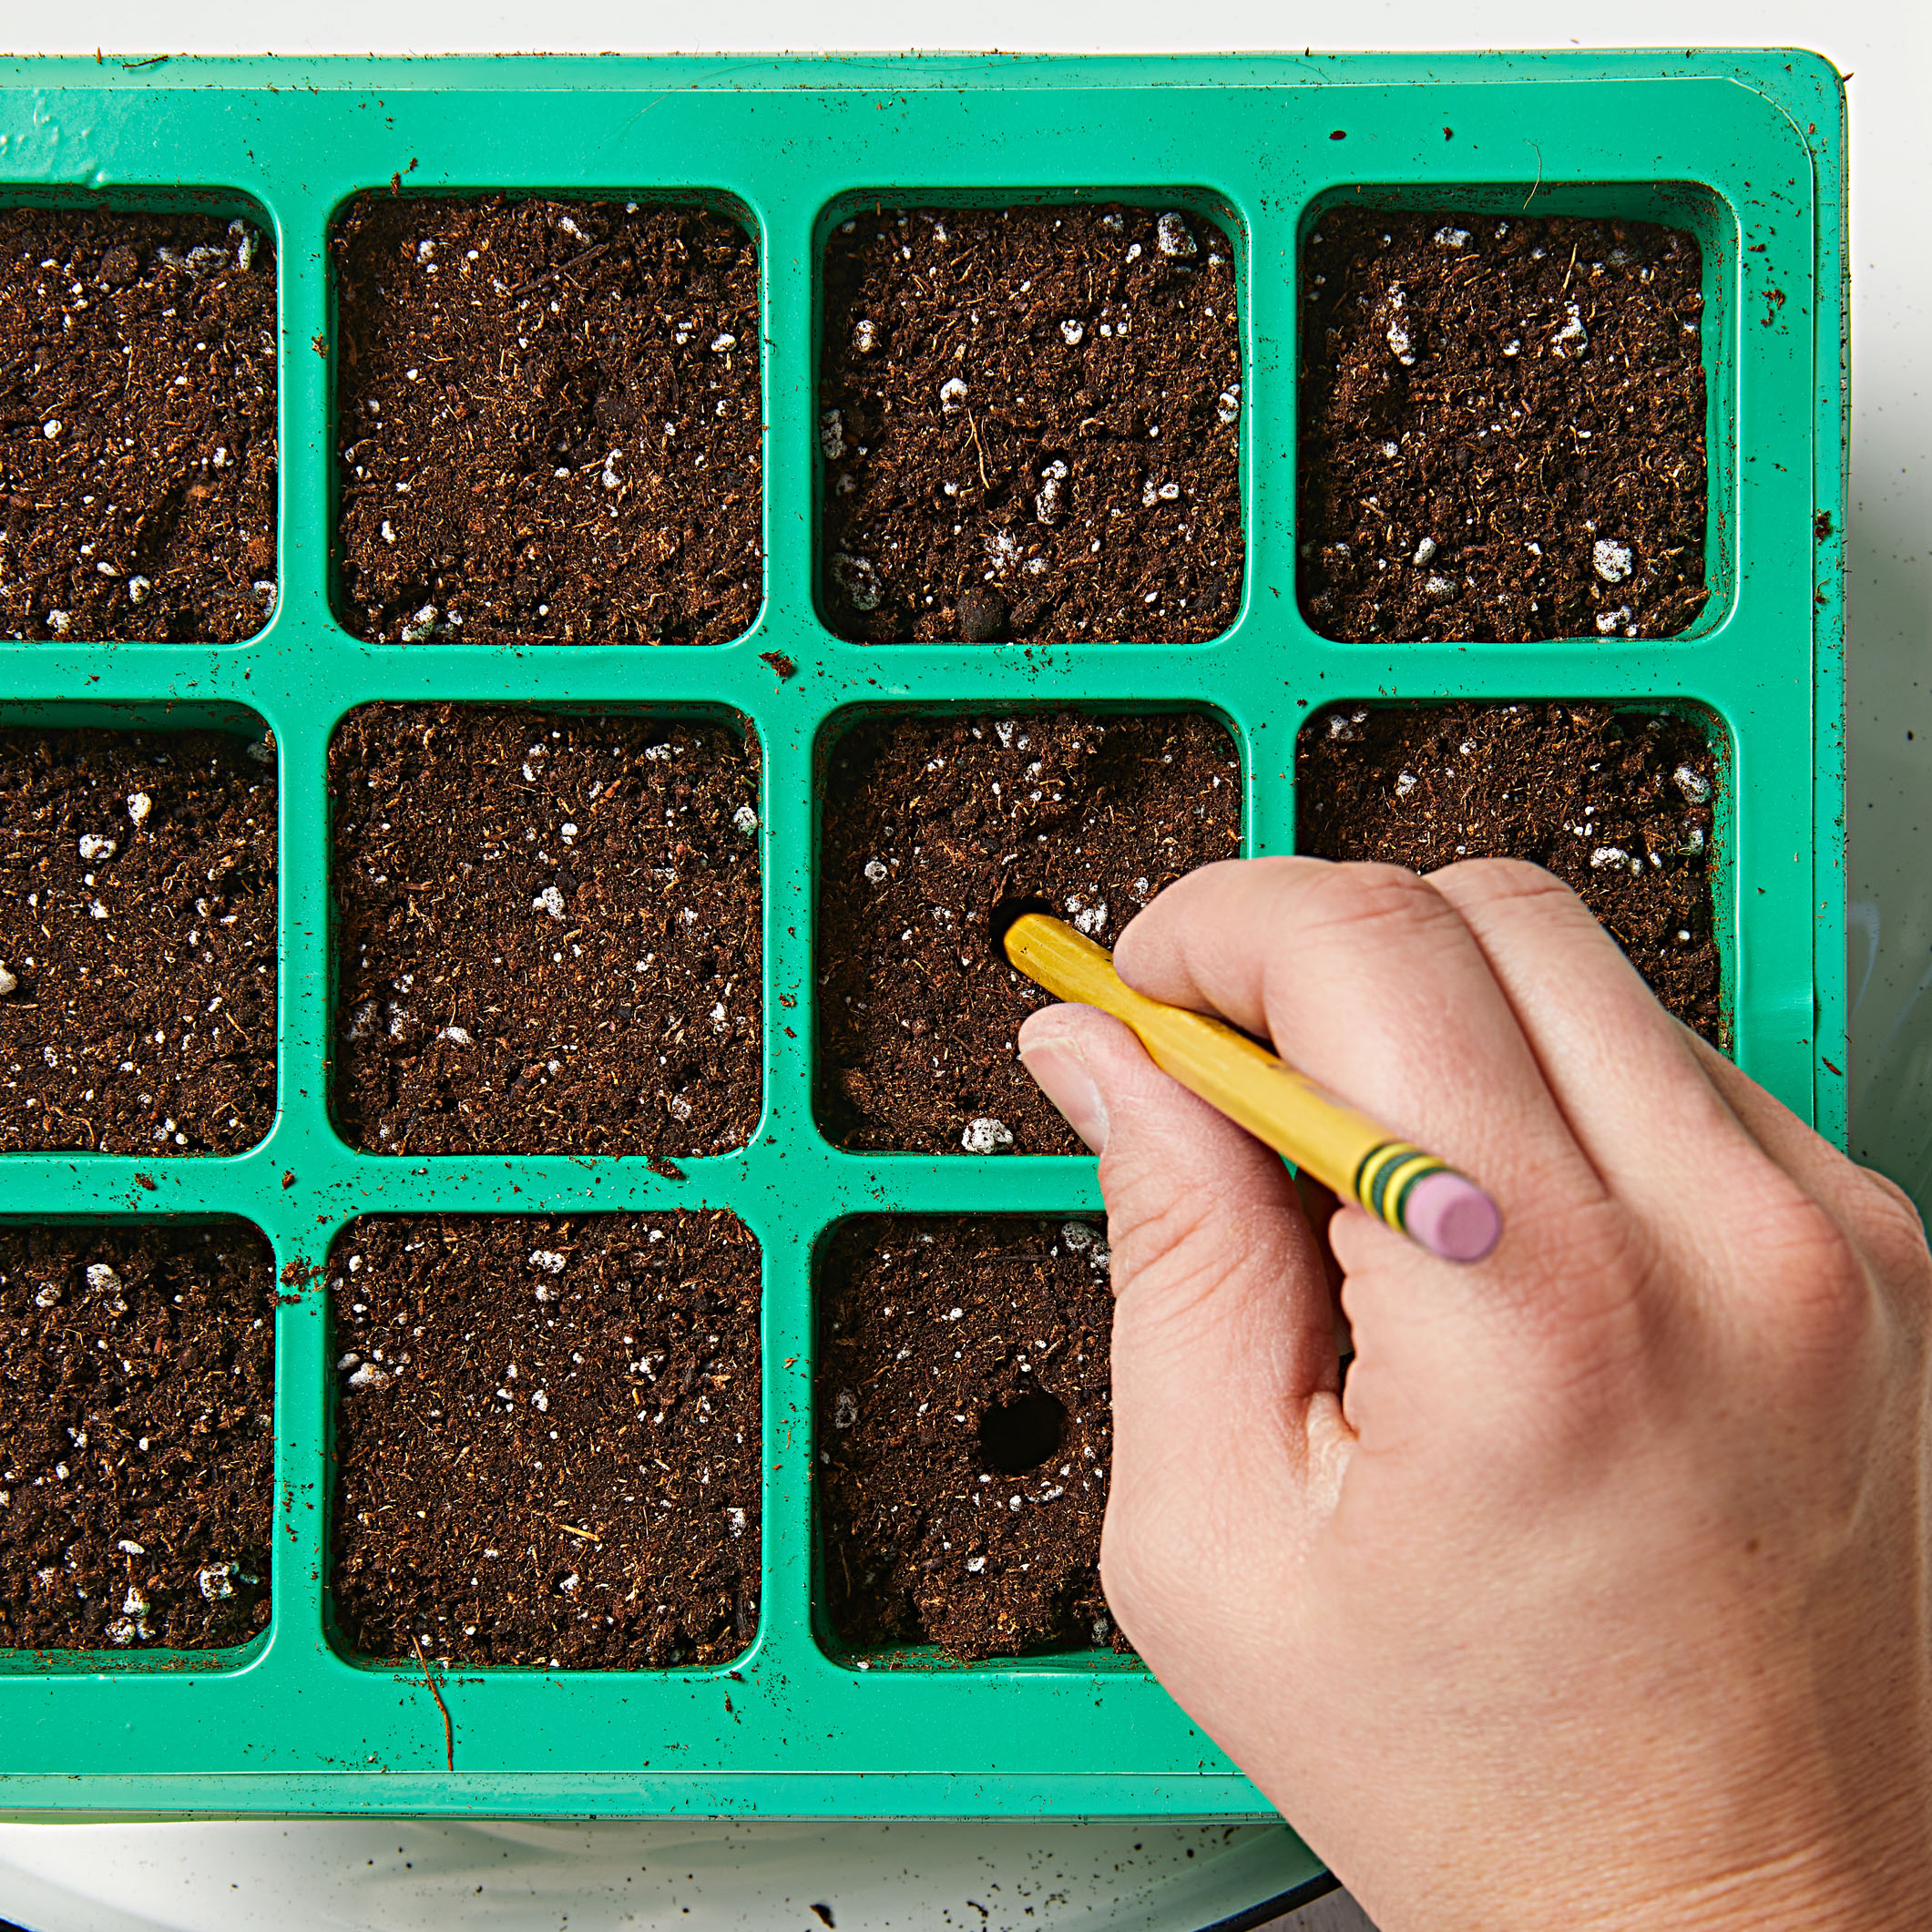 How to start seeds-Step 2